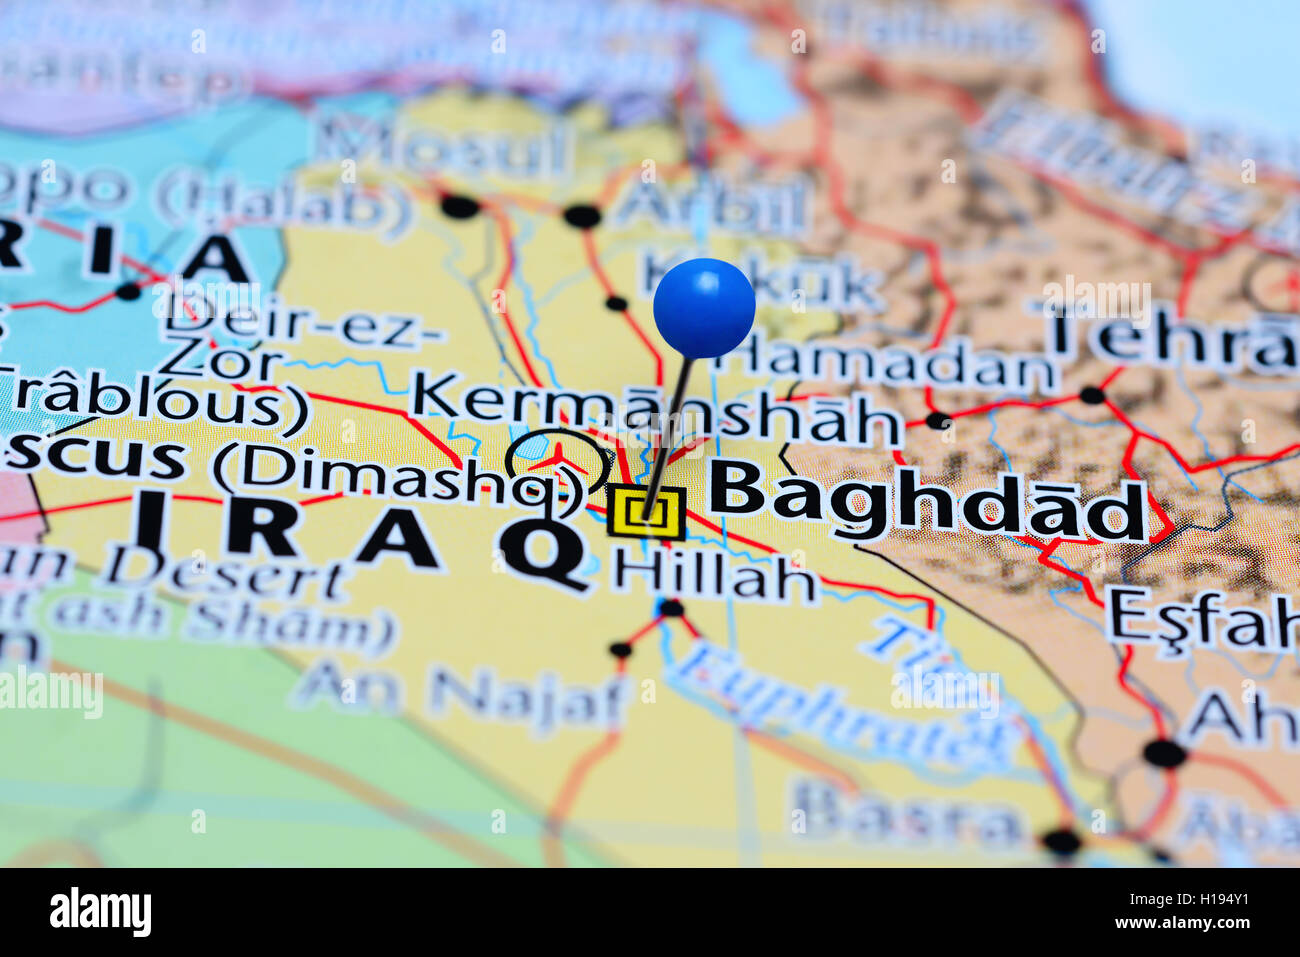 baghdad pinned on a map of iraq stock image